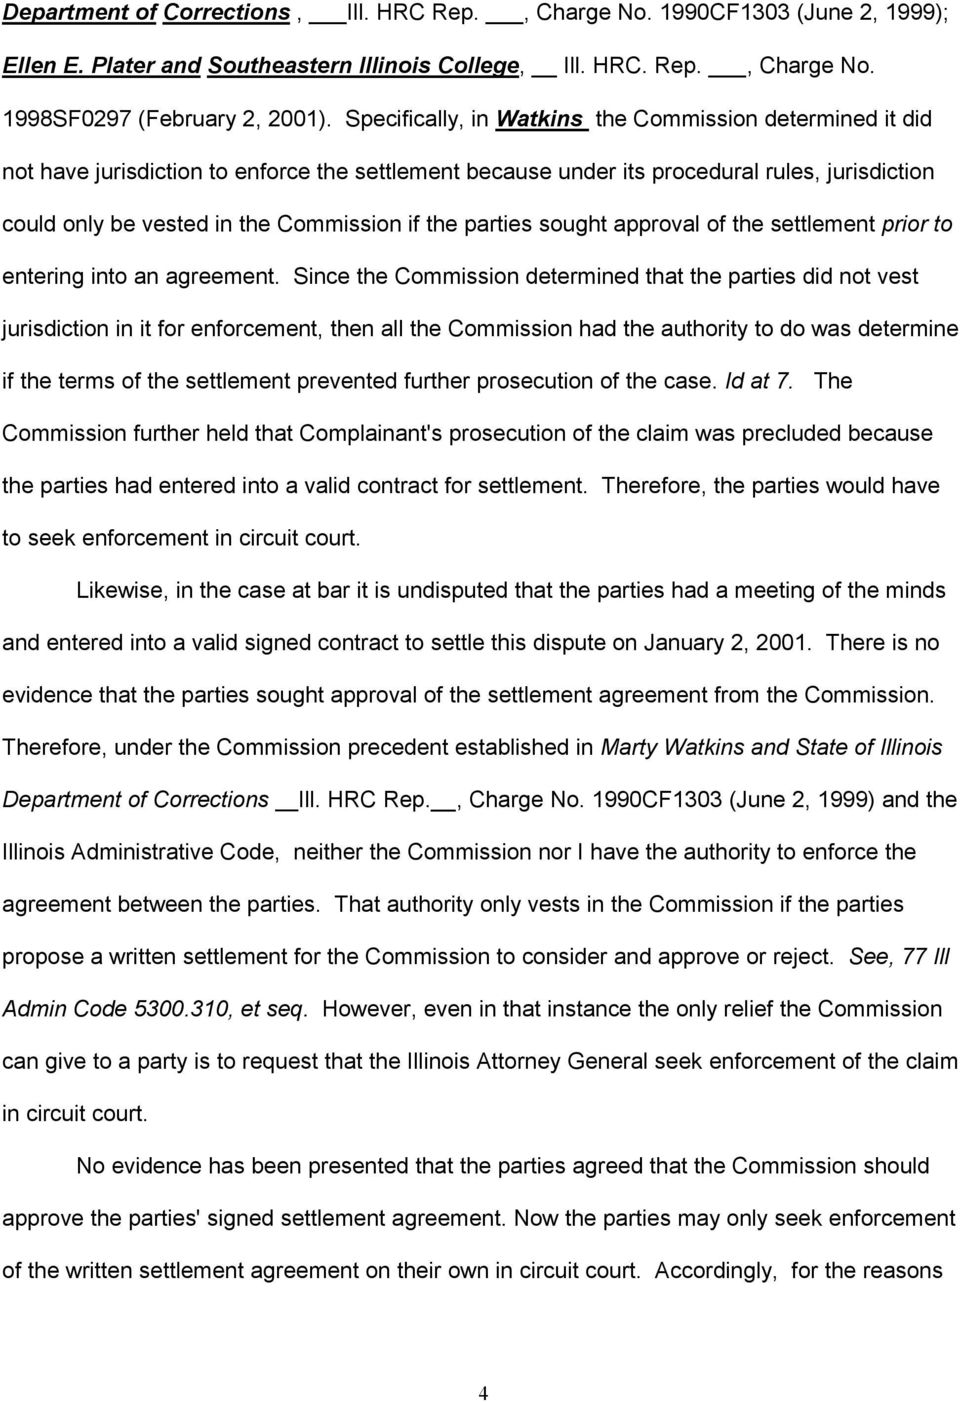 the parties sought approval of the settlement prior to entering into an agreement.